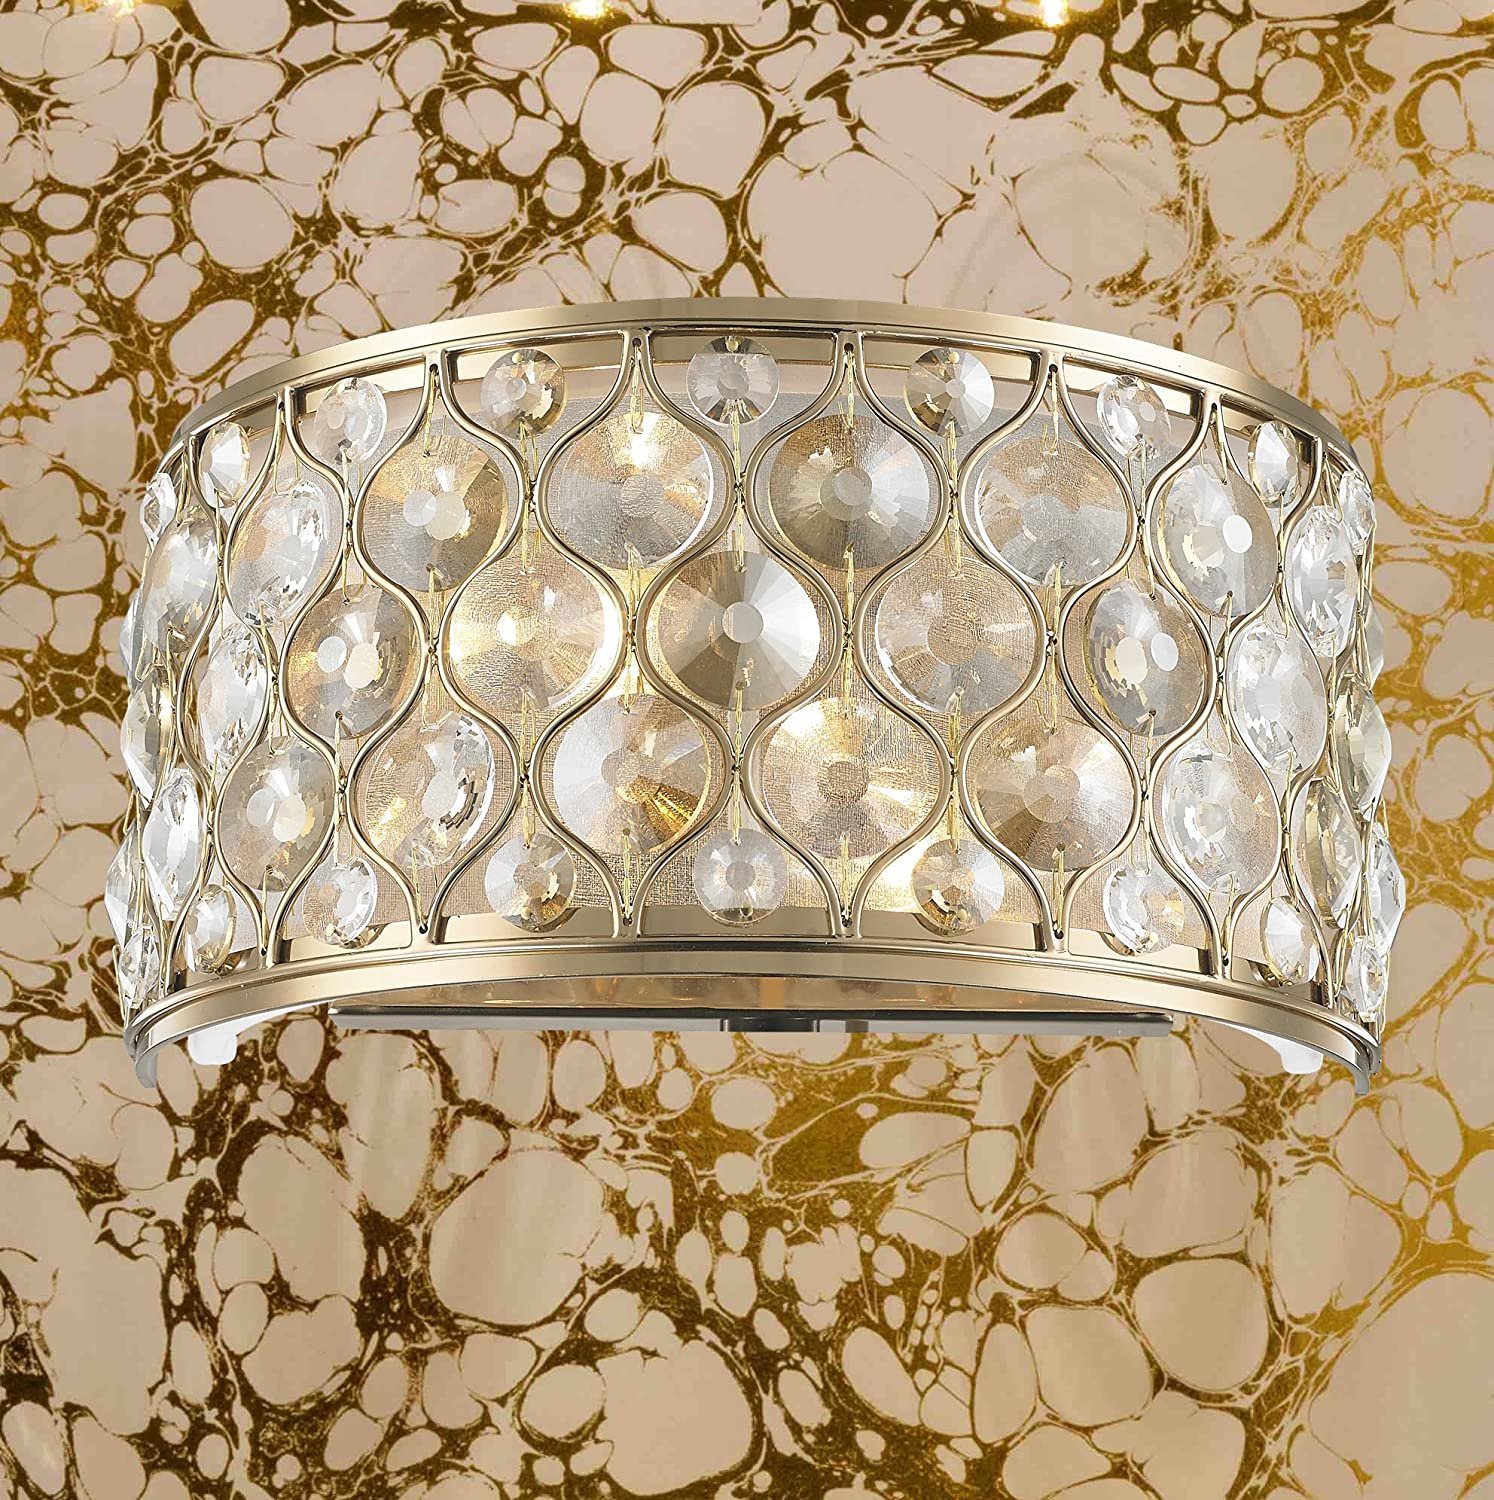 Worldwide Lighting WS410CG12-CM Paris Collection 2 Light Champagne Finish with Clear and Golden Teak Crystal Wall Sconce W12H6 Small